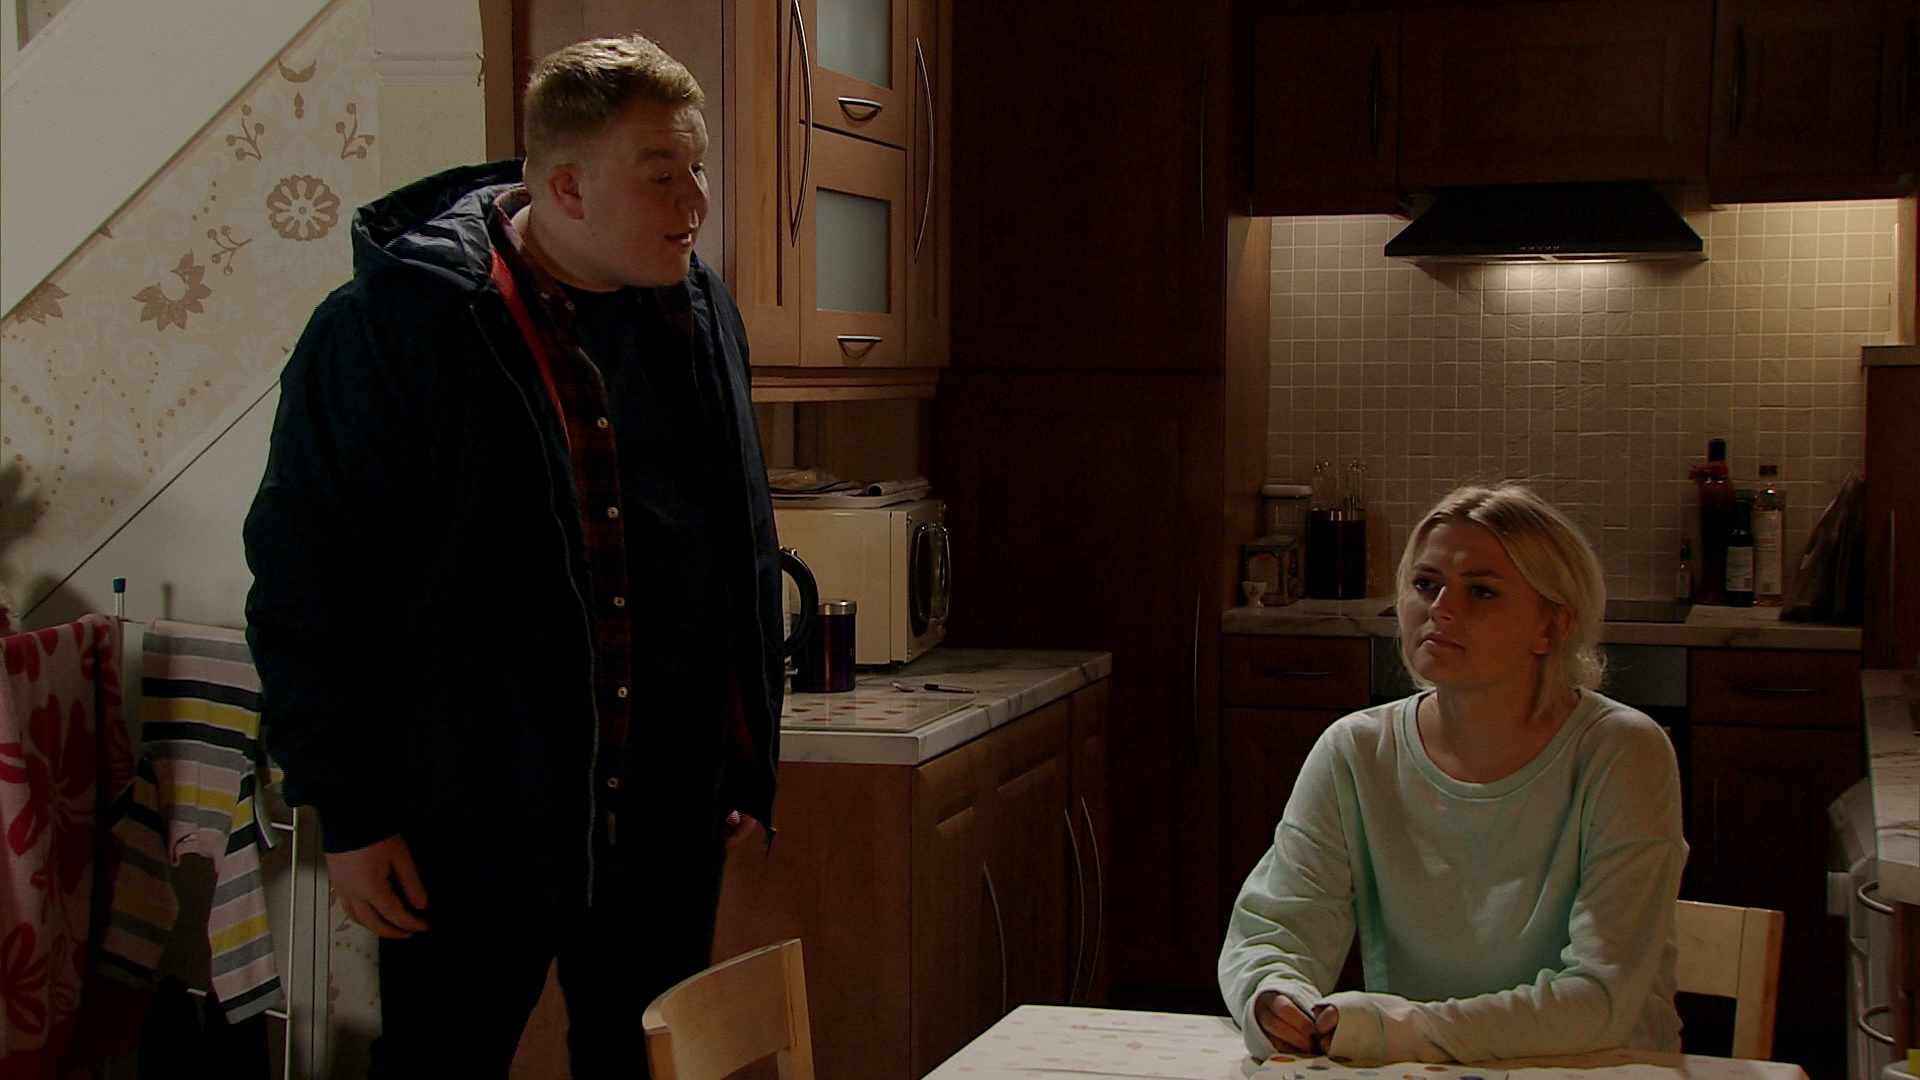 CORRIE 9354 MON 15TH JAN 2030 PREVIEW CLIP